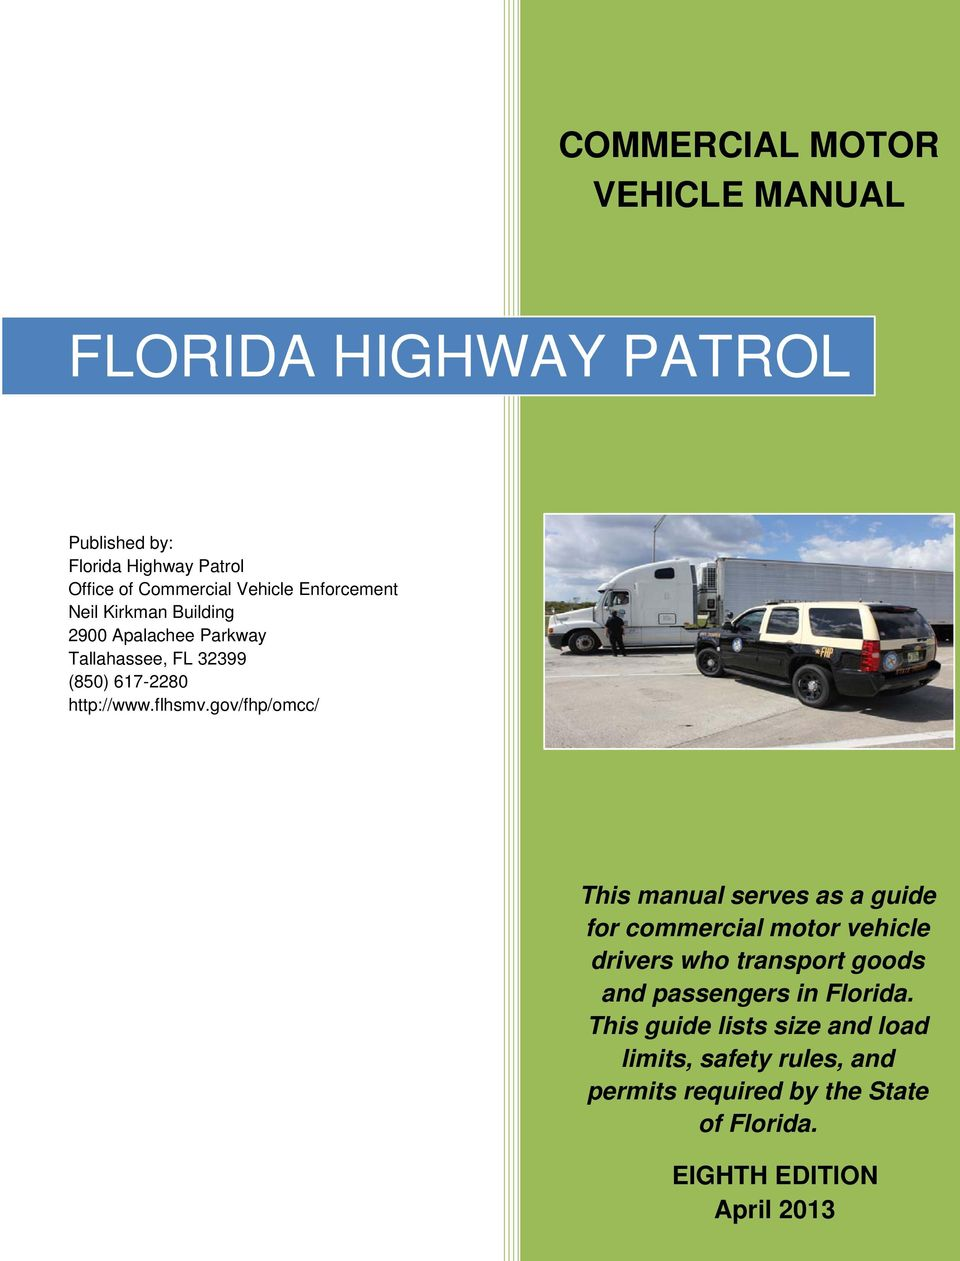 State of florida motor vehicles vehicle ideas for Florida highway safety and motor vehicles phone number